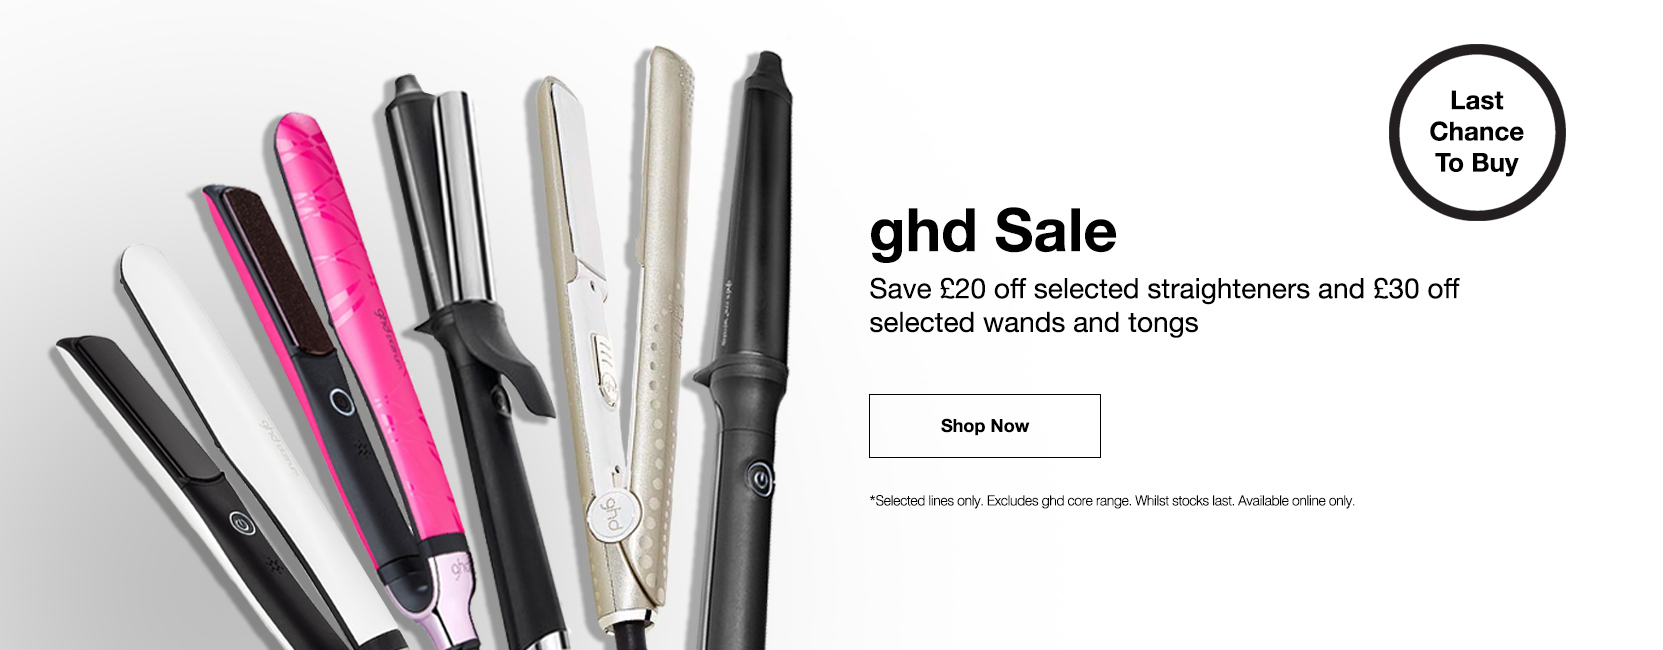 ghd Offers